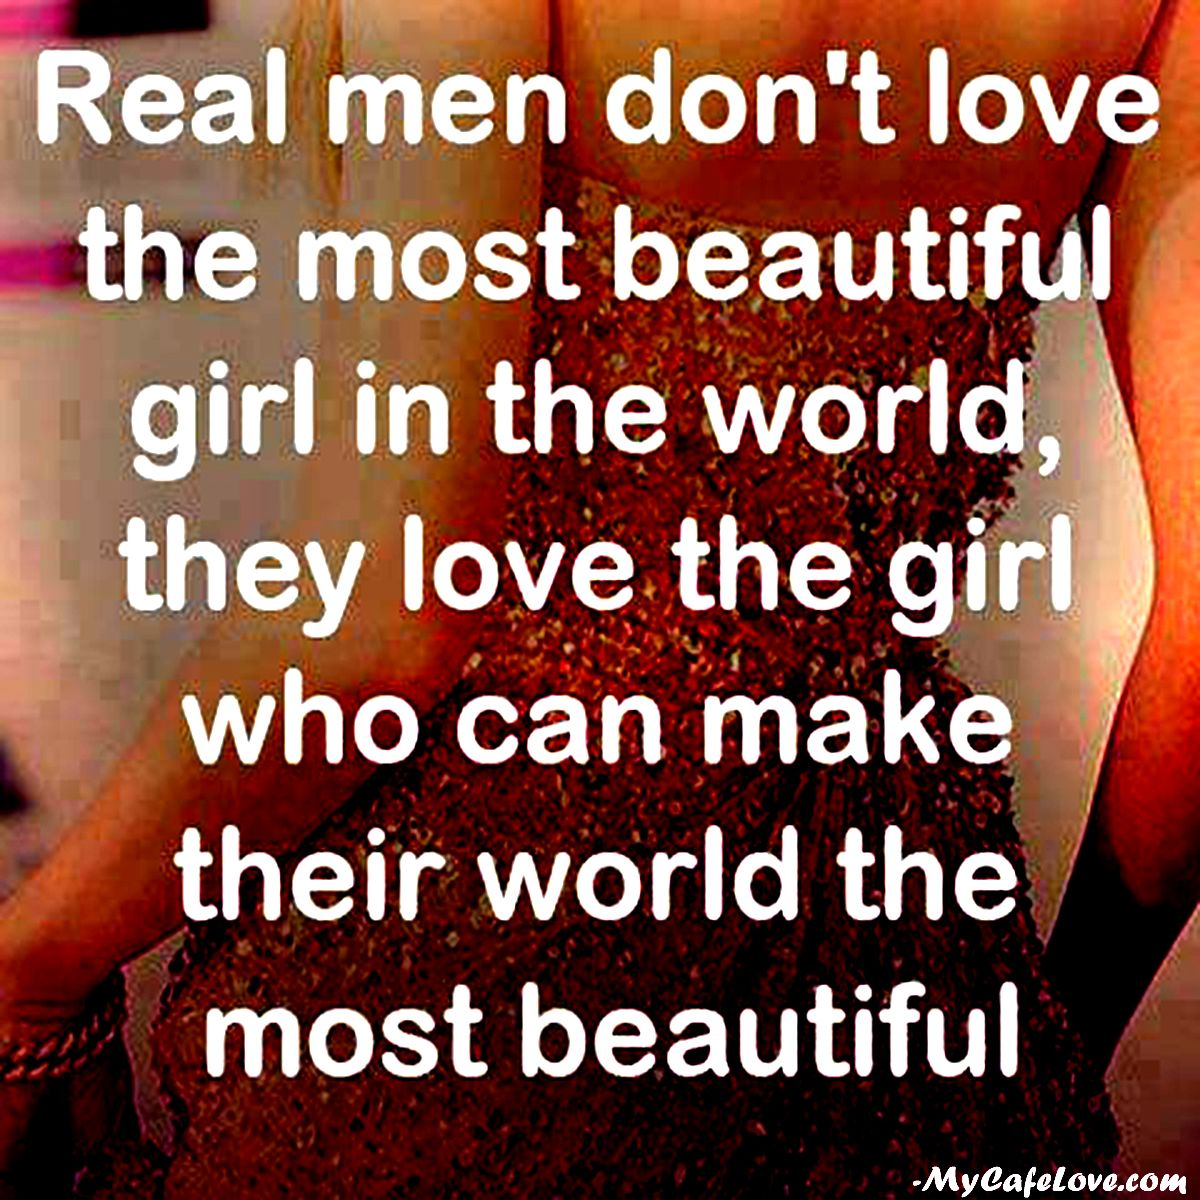 Heart Touching Quotes For Girls thumbnail